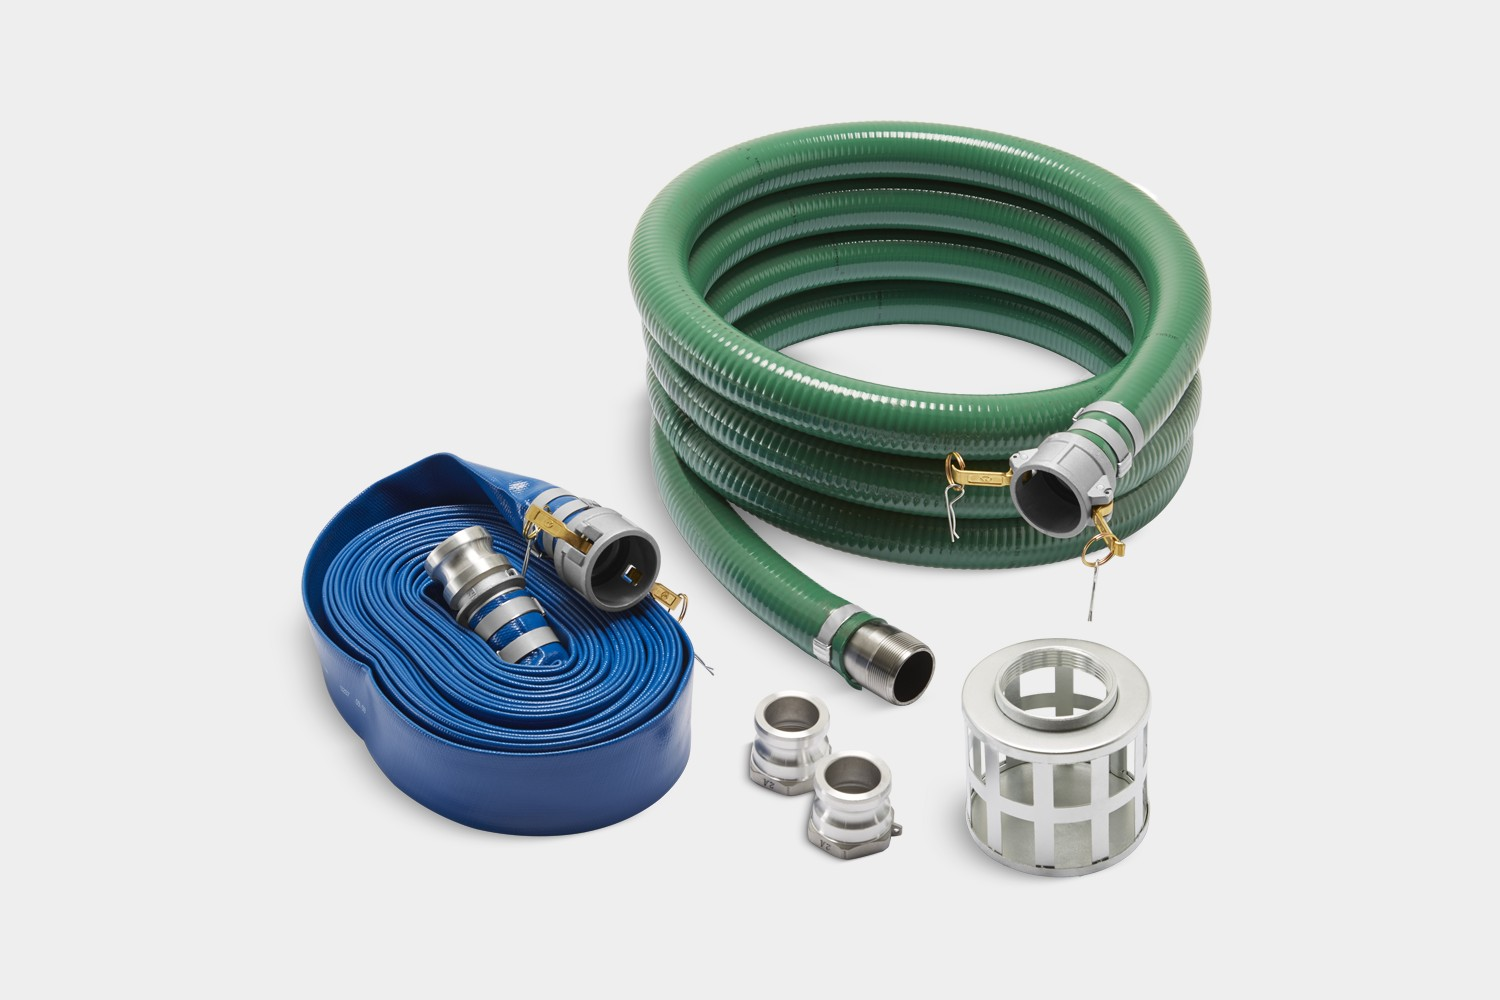 KOHLER Portable Generators and Pumps Accessories | Trash Pump Hose Kit